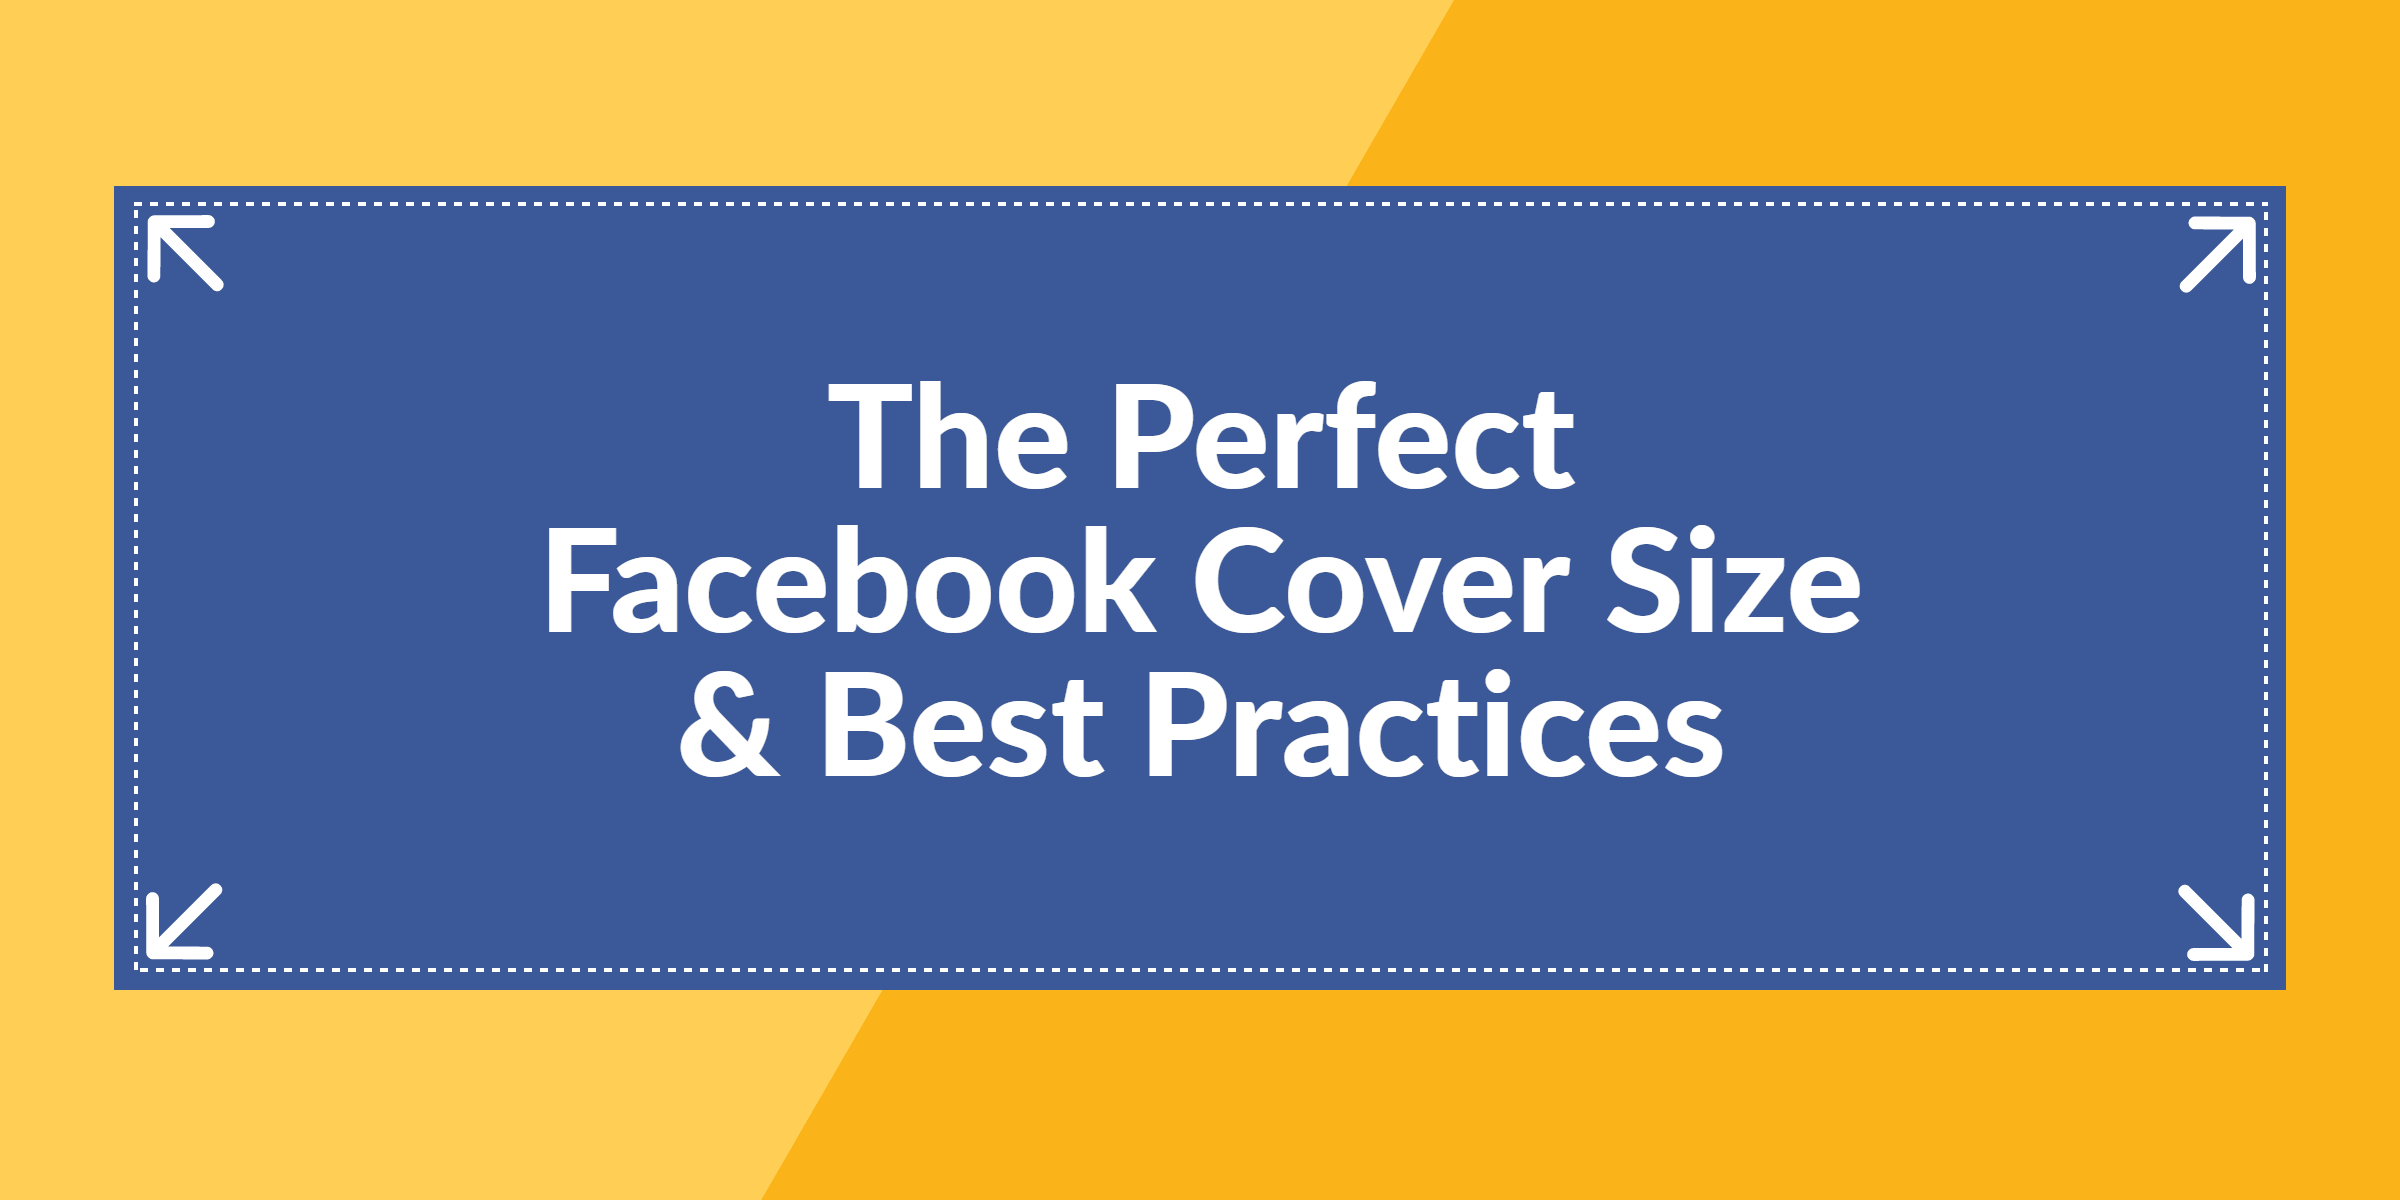 The Perfect Facebook Cover Photo Size & Best Practices